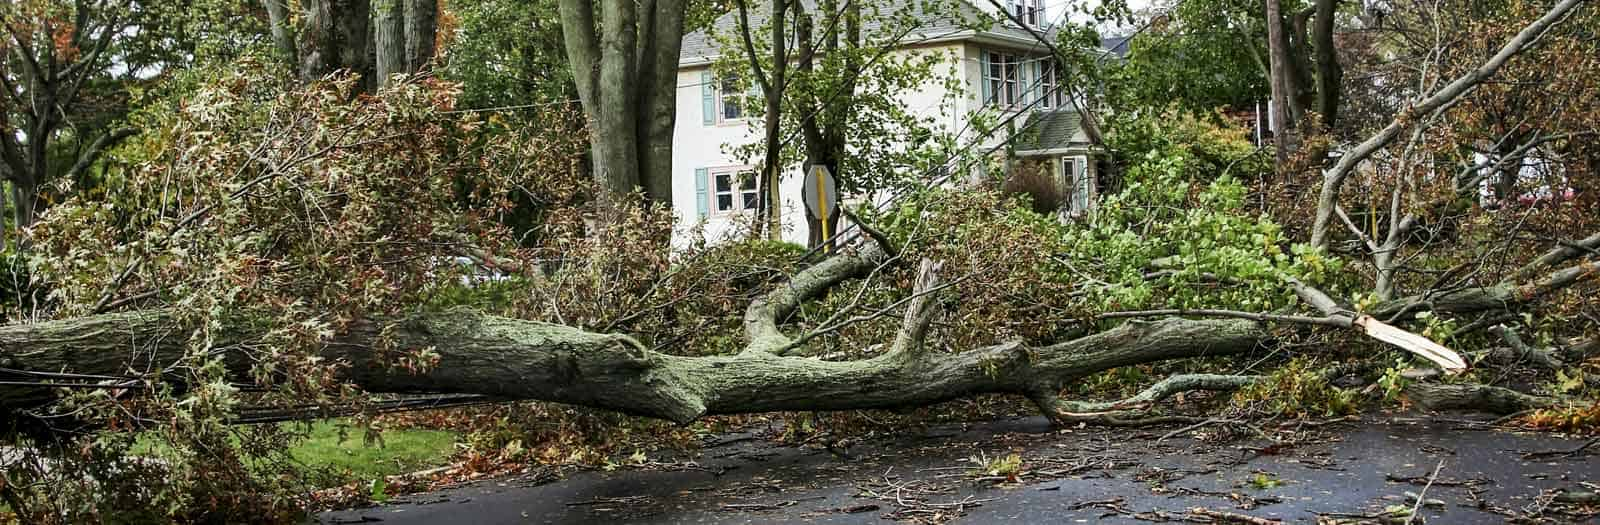 downed tree in the street in front of house